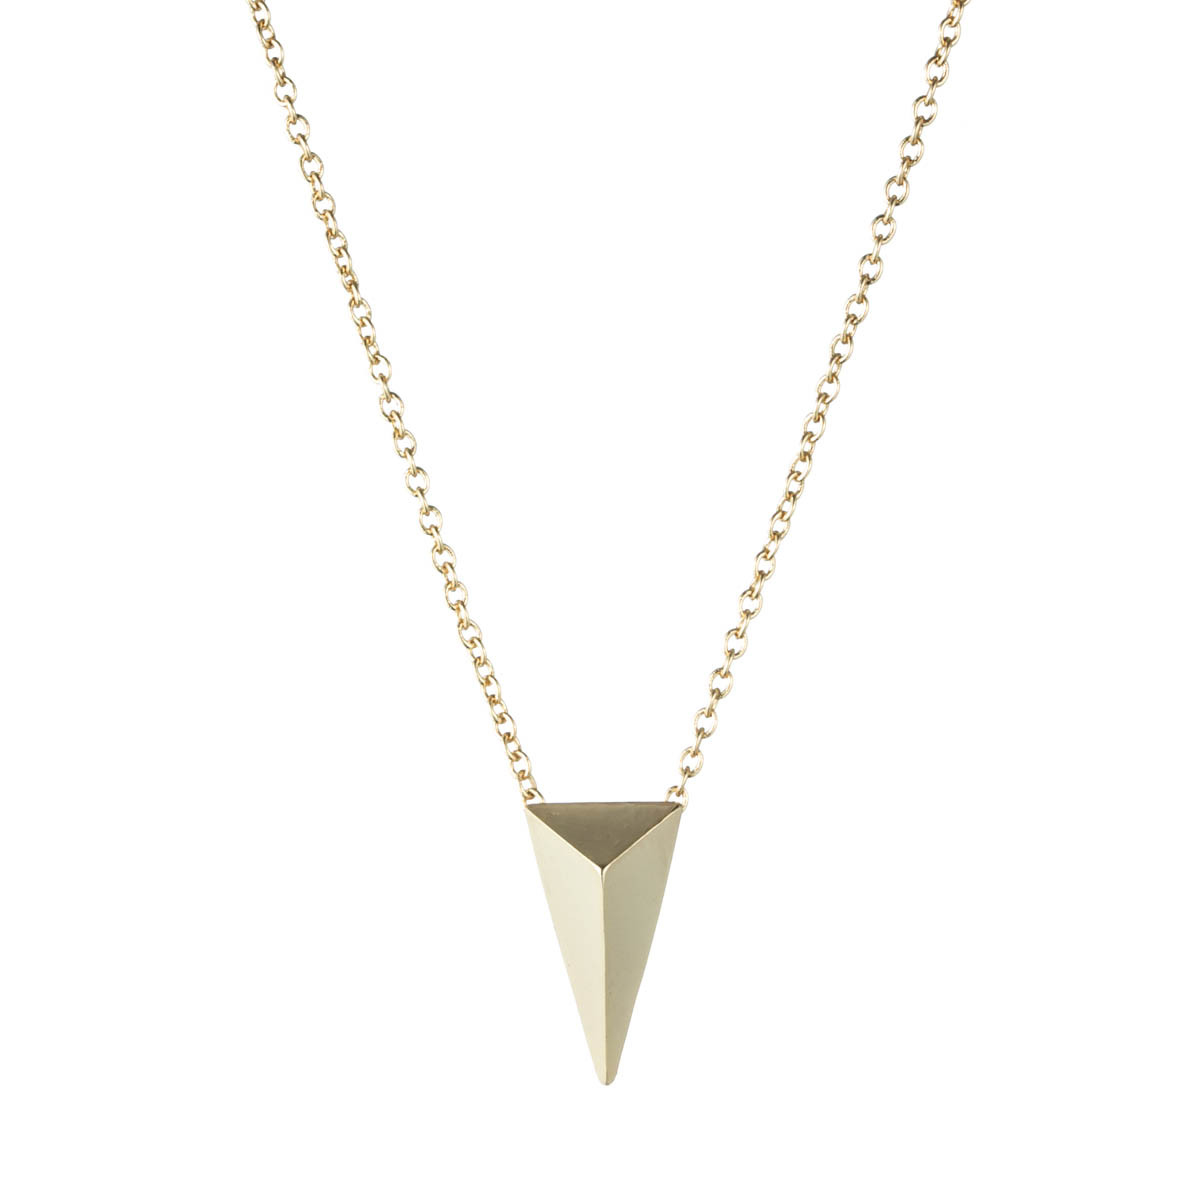 bittar gold pyramid pendant necklace you might also